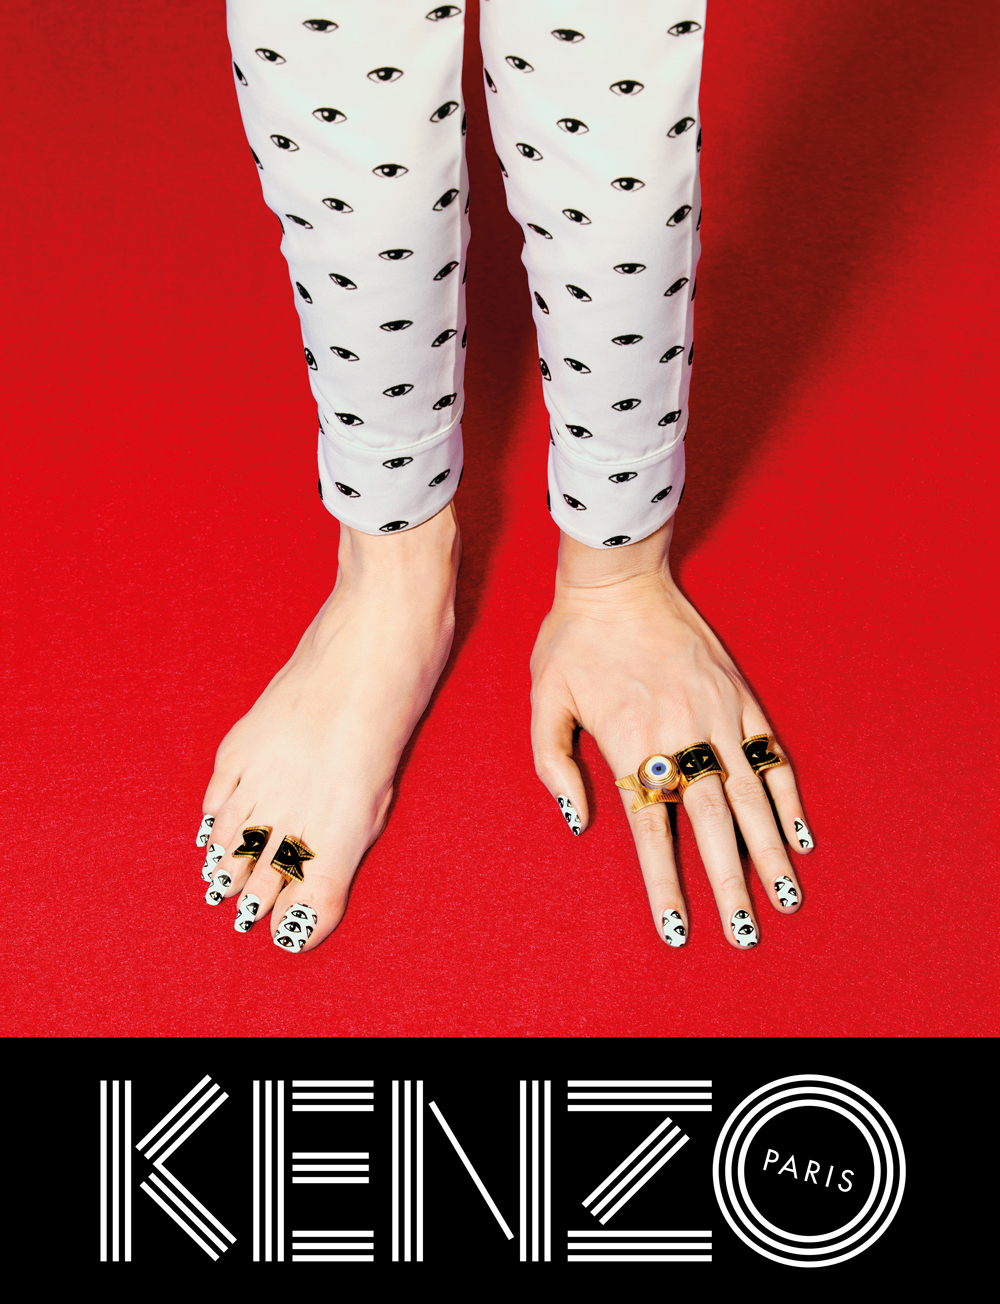 Kenzo fall/winter 2013 ad campaign by Pierpaolo Ferrari, Maurizio Cattelan